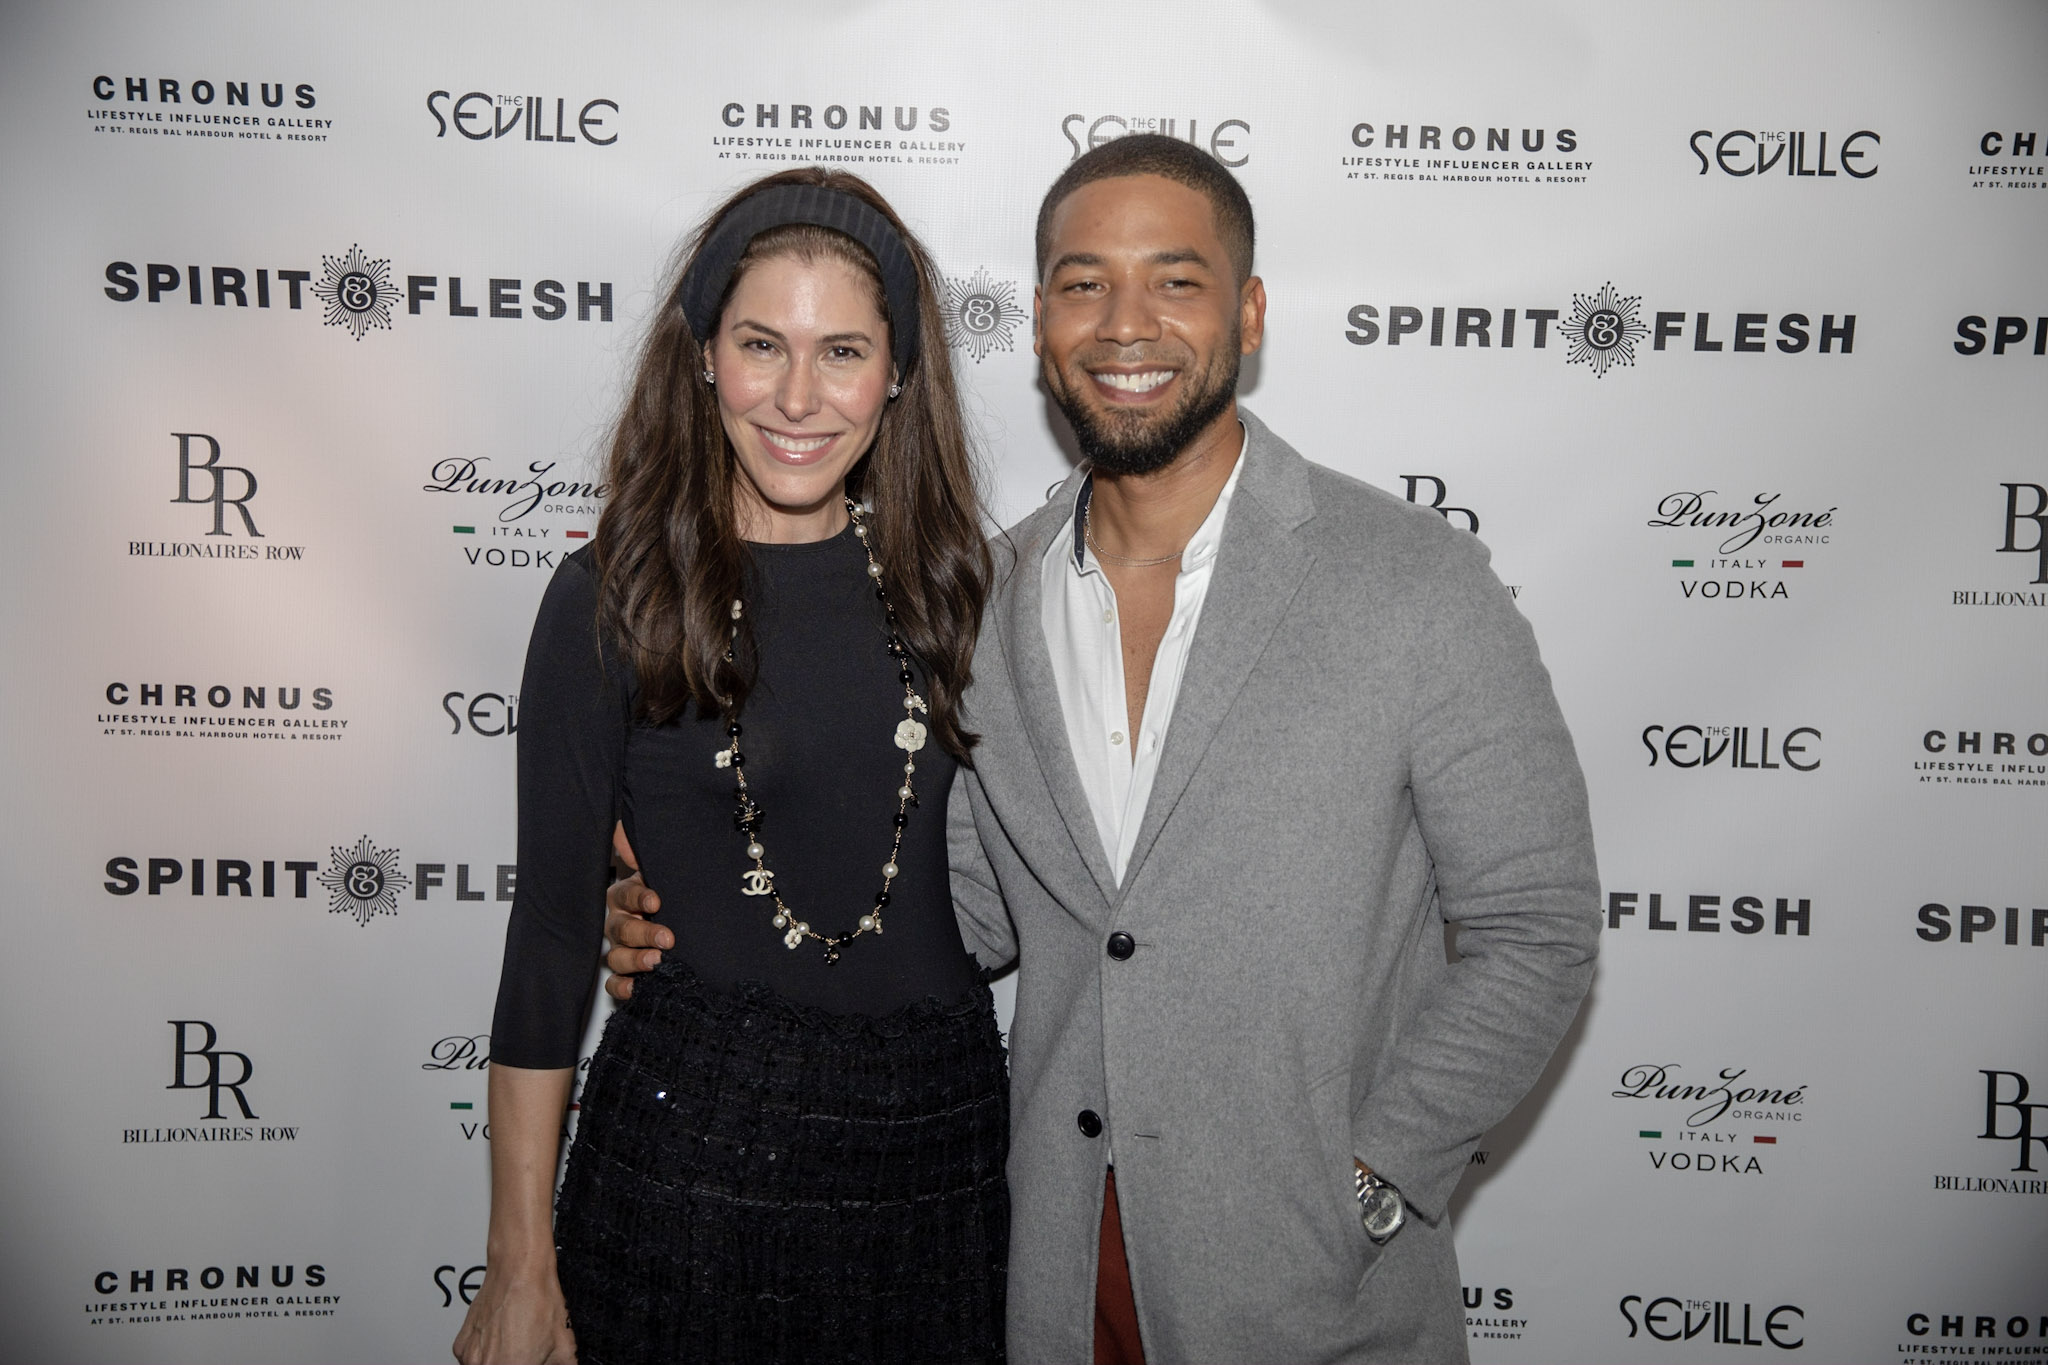 Spirit & Flesh Magazine cover event Jussie Smollett & Cheryl Scharf by Kenneth de la Torre